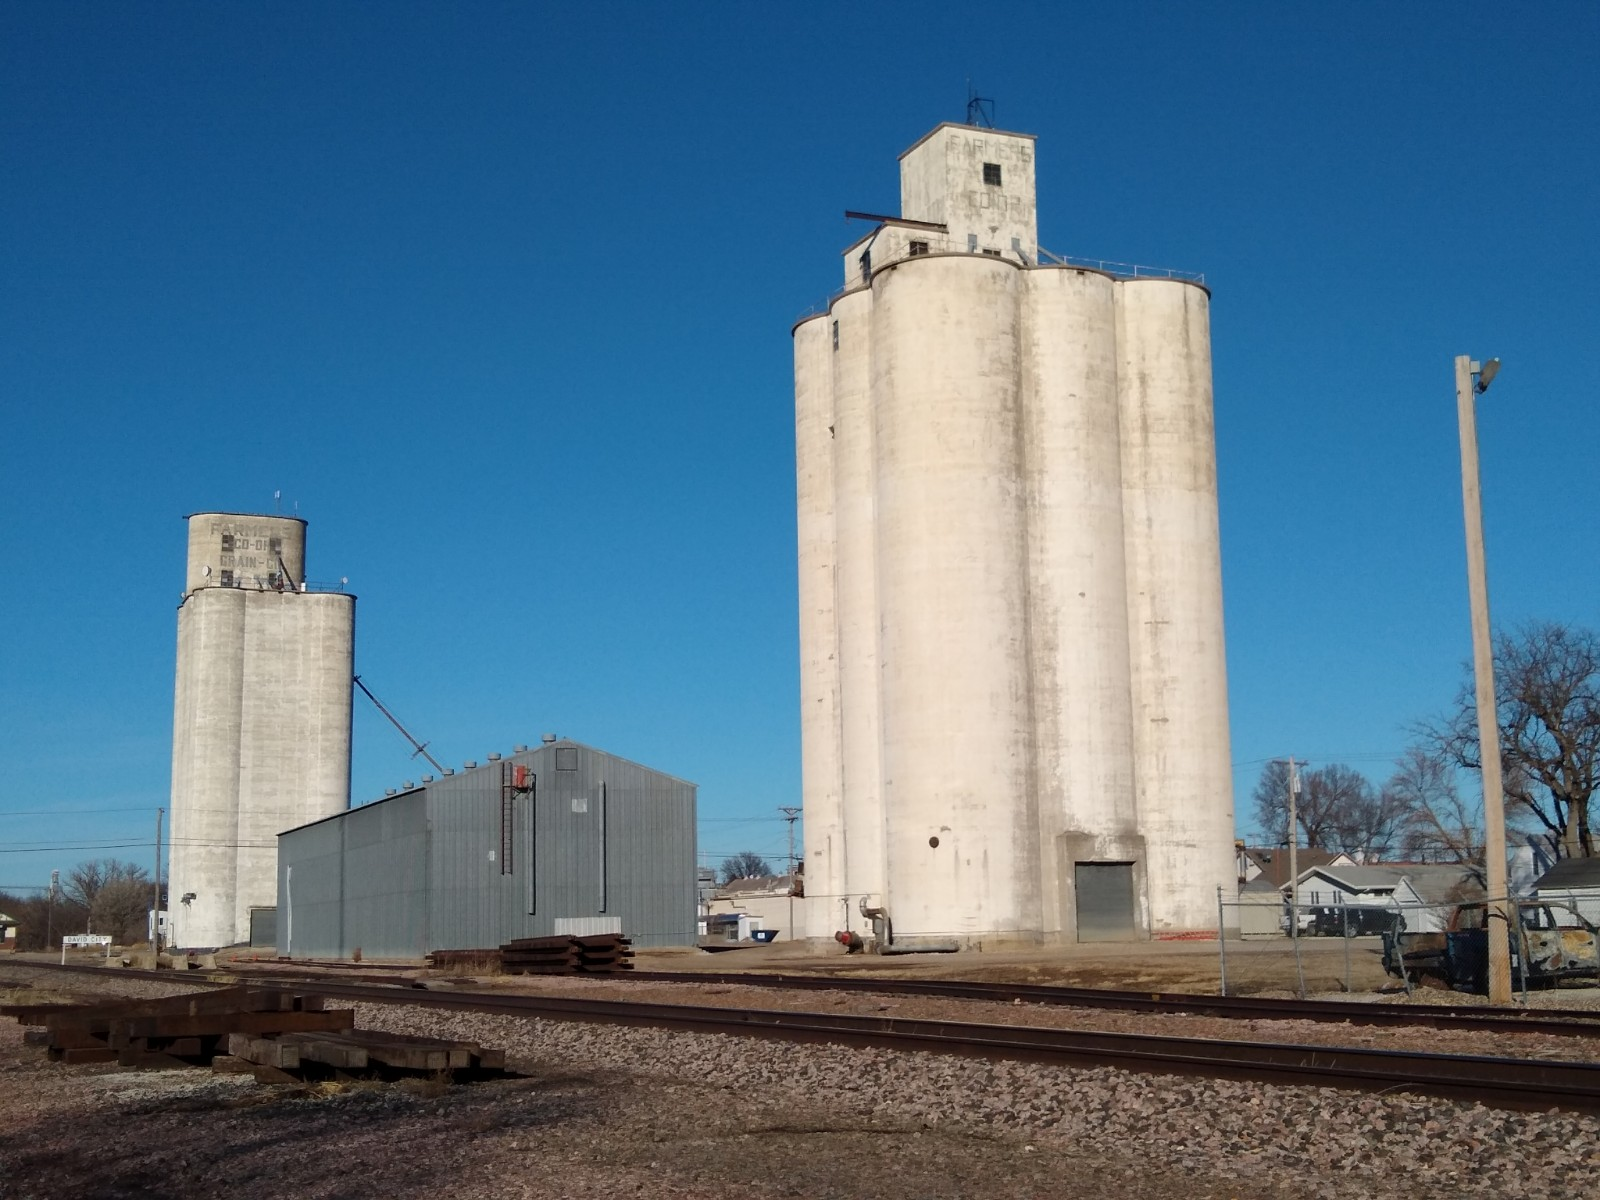 View of David City grain elevators